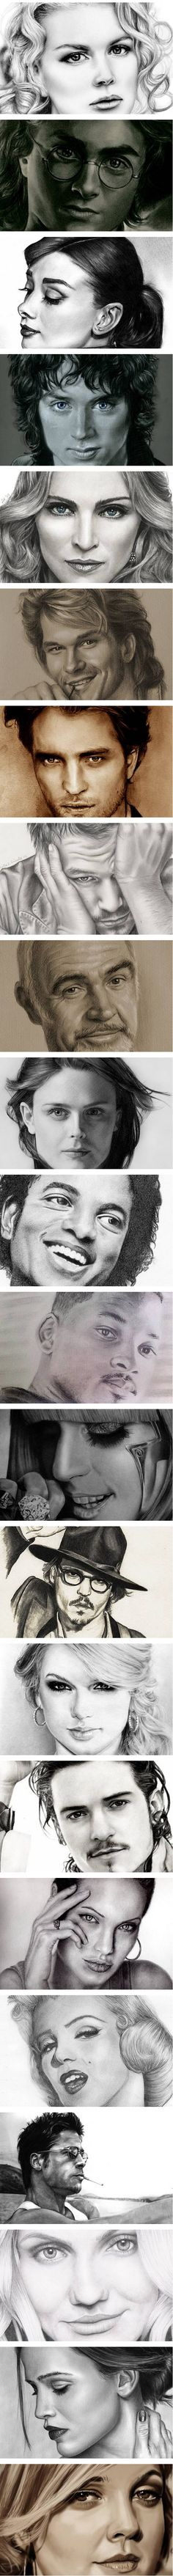 Trying to figure out why some of these drawings look less realistic than the others